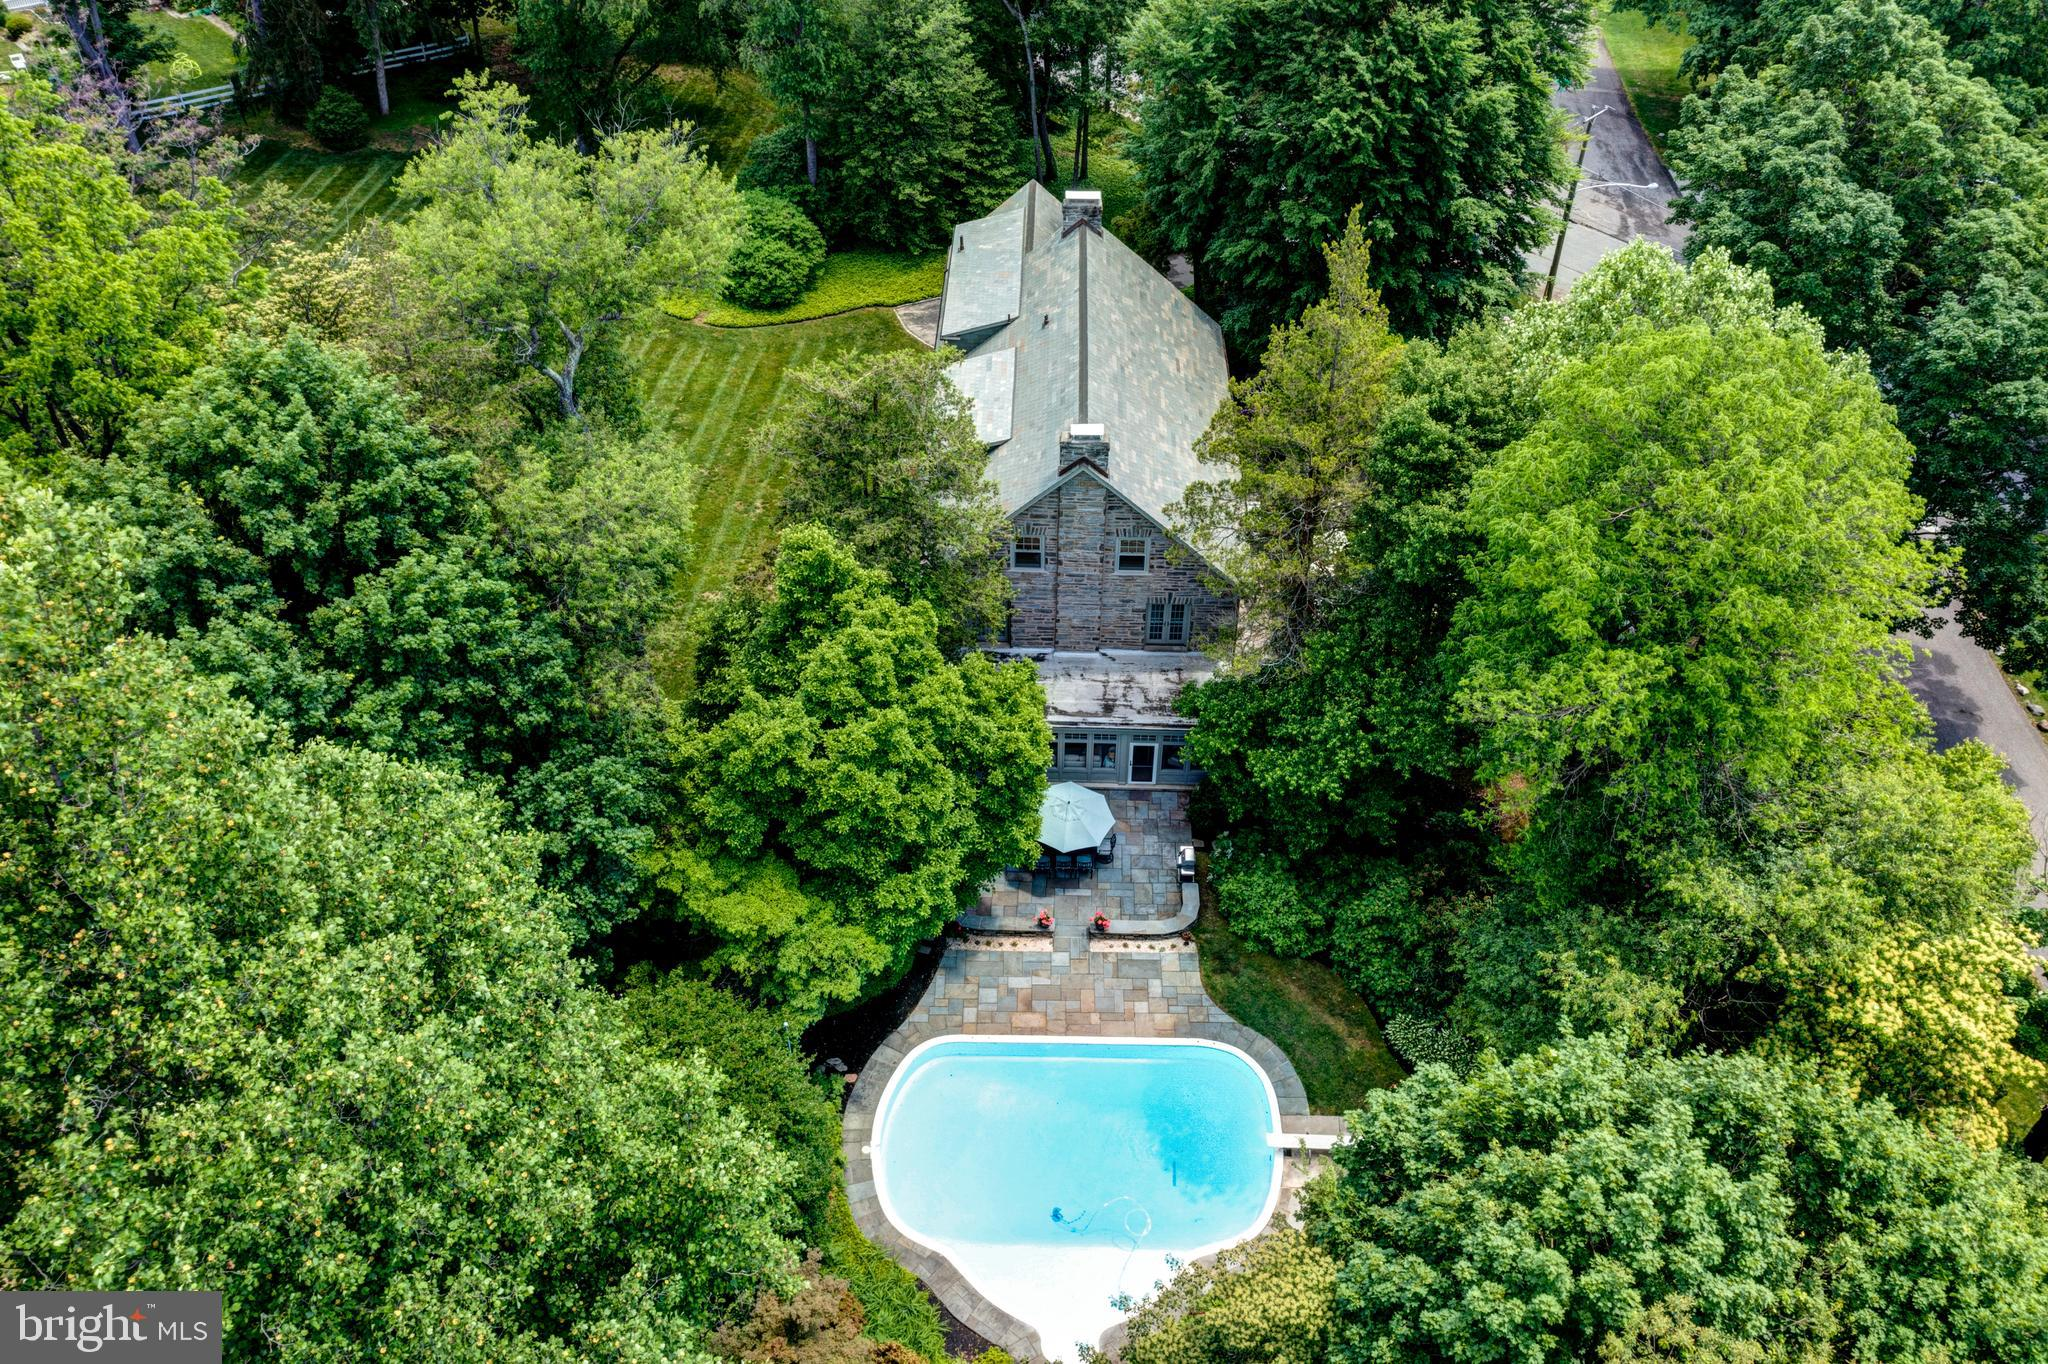 Perched above a quiet canopied corner, just steps from the foot trails of Carpenter's Woods, you will find the quintessential Wissahickon schist center-hall Colonial. Sitting on almost an acre and a half the 8,000 square foot home seamlessly integrates the old and new in creative ways that are both modern and timeless. Upon entering the home, you will be greeted by a gracious hall featuring gorgeous restored hardwood floors, soaring ceilings and a statement grand staircase. To the right of the foyer is the formal dining room with a feature fireplace and wall length window seat. A set of french doors lead to the sunken sunroom soaked in light which is the perfect retreat for a quiet morning coffee or a good book. The chef's kitchen features a paneled refrigerator, double wall ovens, and a long center island with room for seating. A breakfast nook and a wall of built-in cabinetry complete the kitchen. On the opposite side of the entry is the spacious living room, which includes classic millwork, twin arched openings with pocket shelves and a double sided fireplace bookended by two sets of french doors. The double doors lead to a bright and cozy family room with a beautiful stone wall that reminds of Valley Green. The comforting space offers direct access to the newly laid bluestone patio which opens to the enchanting salt water swimming pool and lush garden with wrought iron surround.   The second level includes a stunning main suite. The primary suite features a wall of built-in closets, custom dressing room with an abundance of detailed storage, a small center island and recessed lighting. The ensuite bathroom rounds out the space, with marble throughout, dual sinks, a soaking tub and glass enclosed rain shower. The convenient home office and matching set of Jack and Jill suites balances the second level. The third floor hosts a large completely renovated great room with a wet bar, half bath and plenty of space for entertaining and gaming. Additional flex space incl